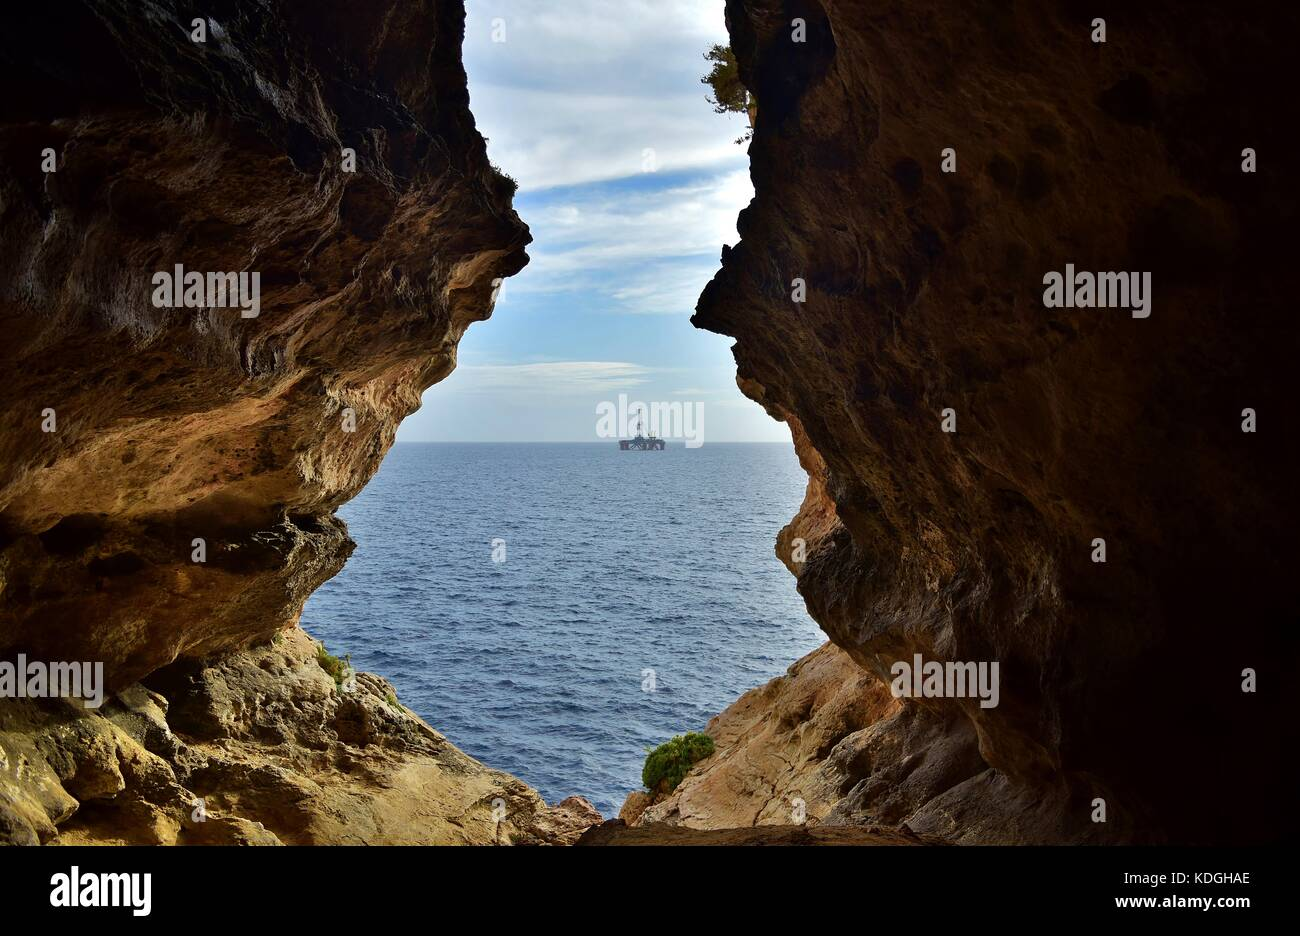 The view from sea cave, formed through weathering / erosion of Maltese limestone. The exit of the cave faces the Stock Photo